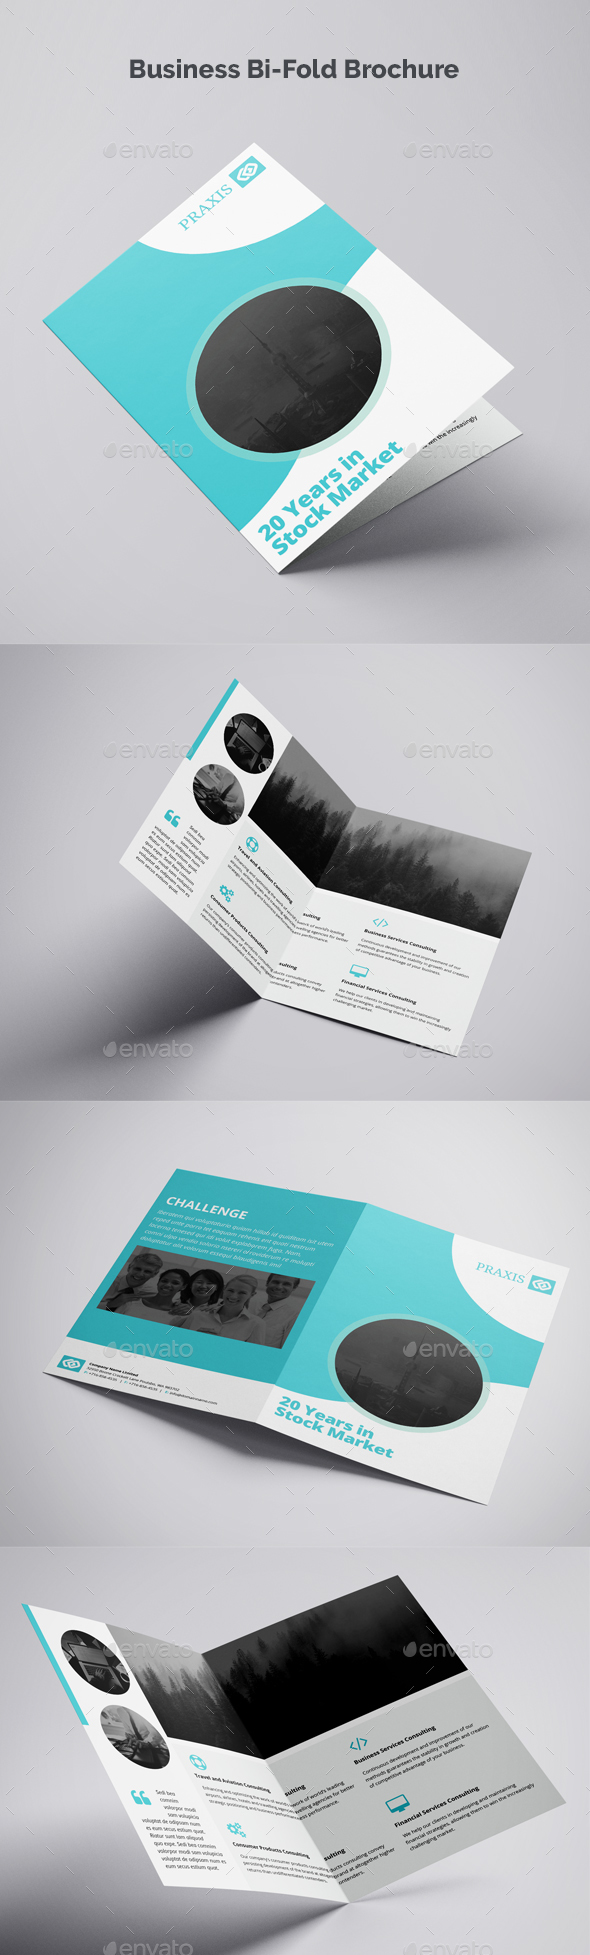 Business Bi-Fold Brochure - Brochures Print Templates